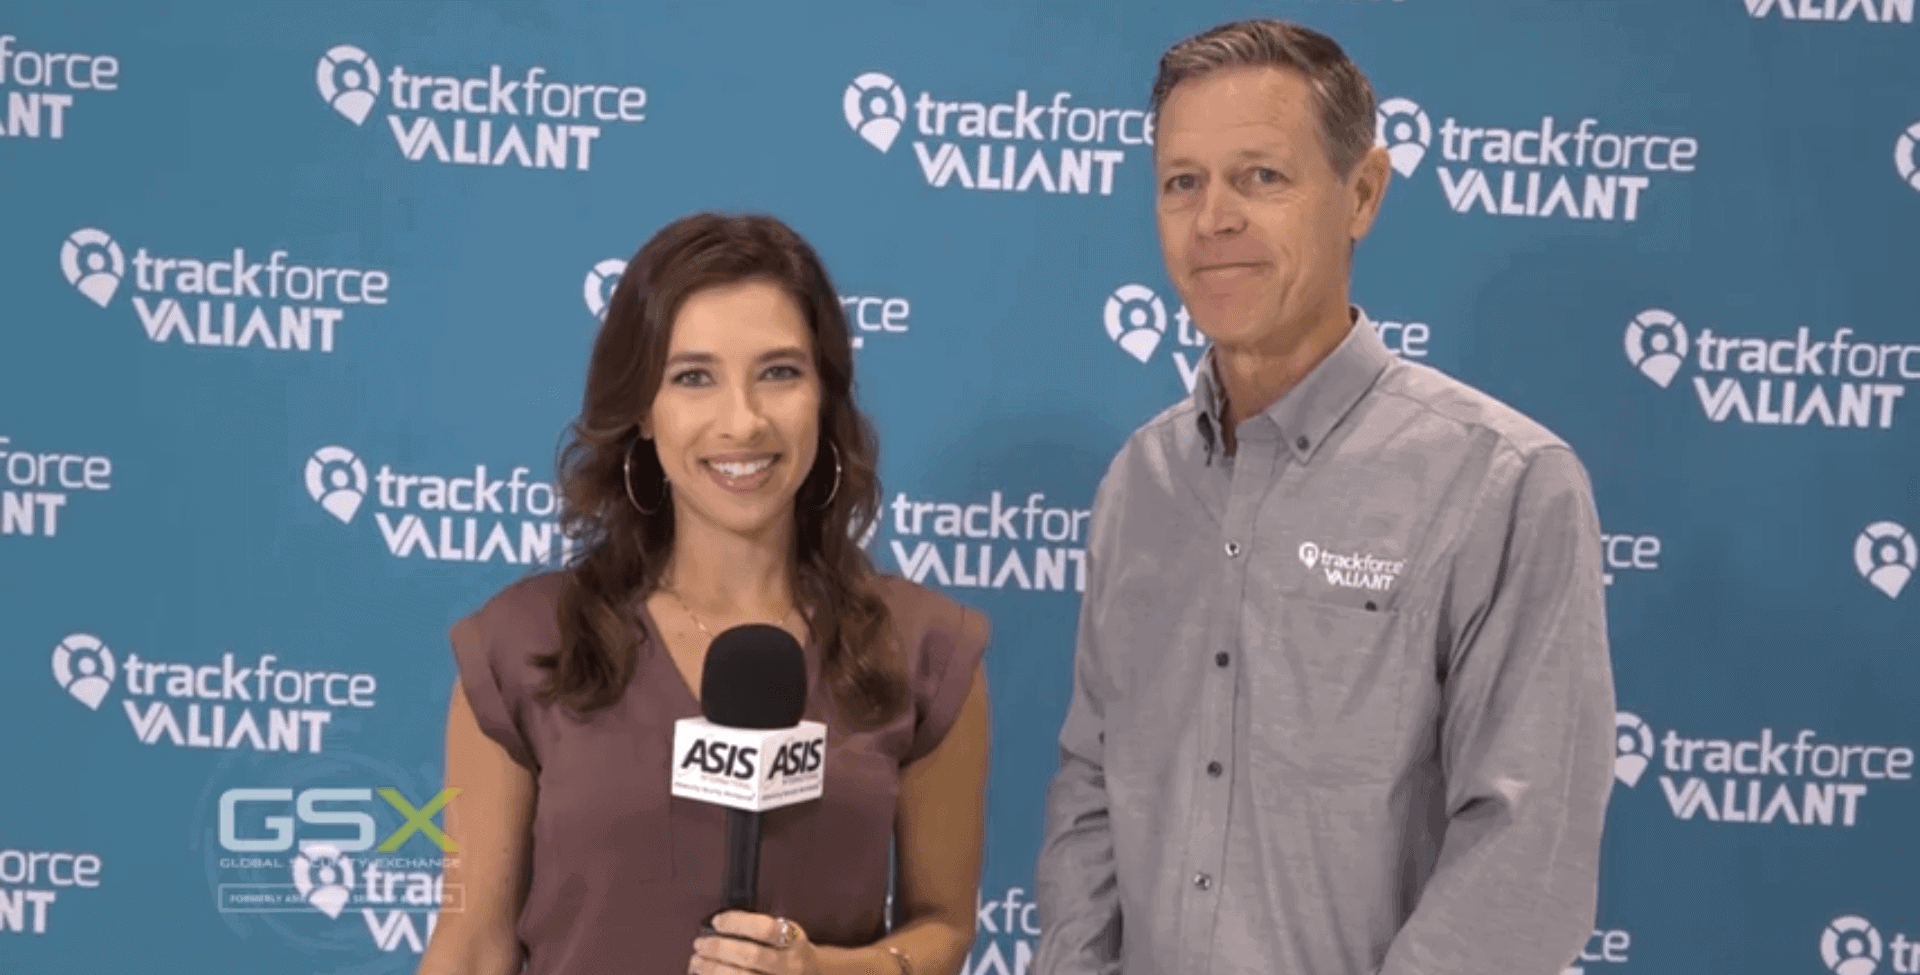 INTERVIEW  |  CEO George Wright on ASIS TV With Host Rachel Kopczyk